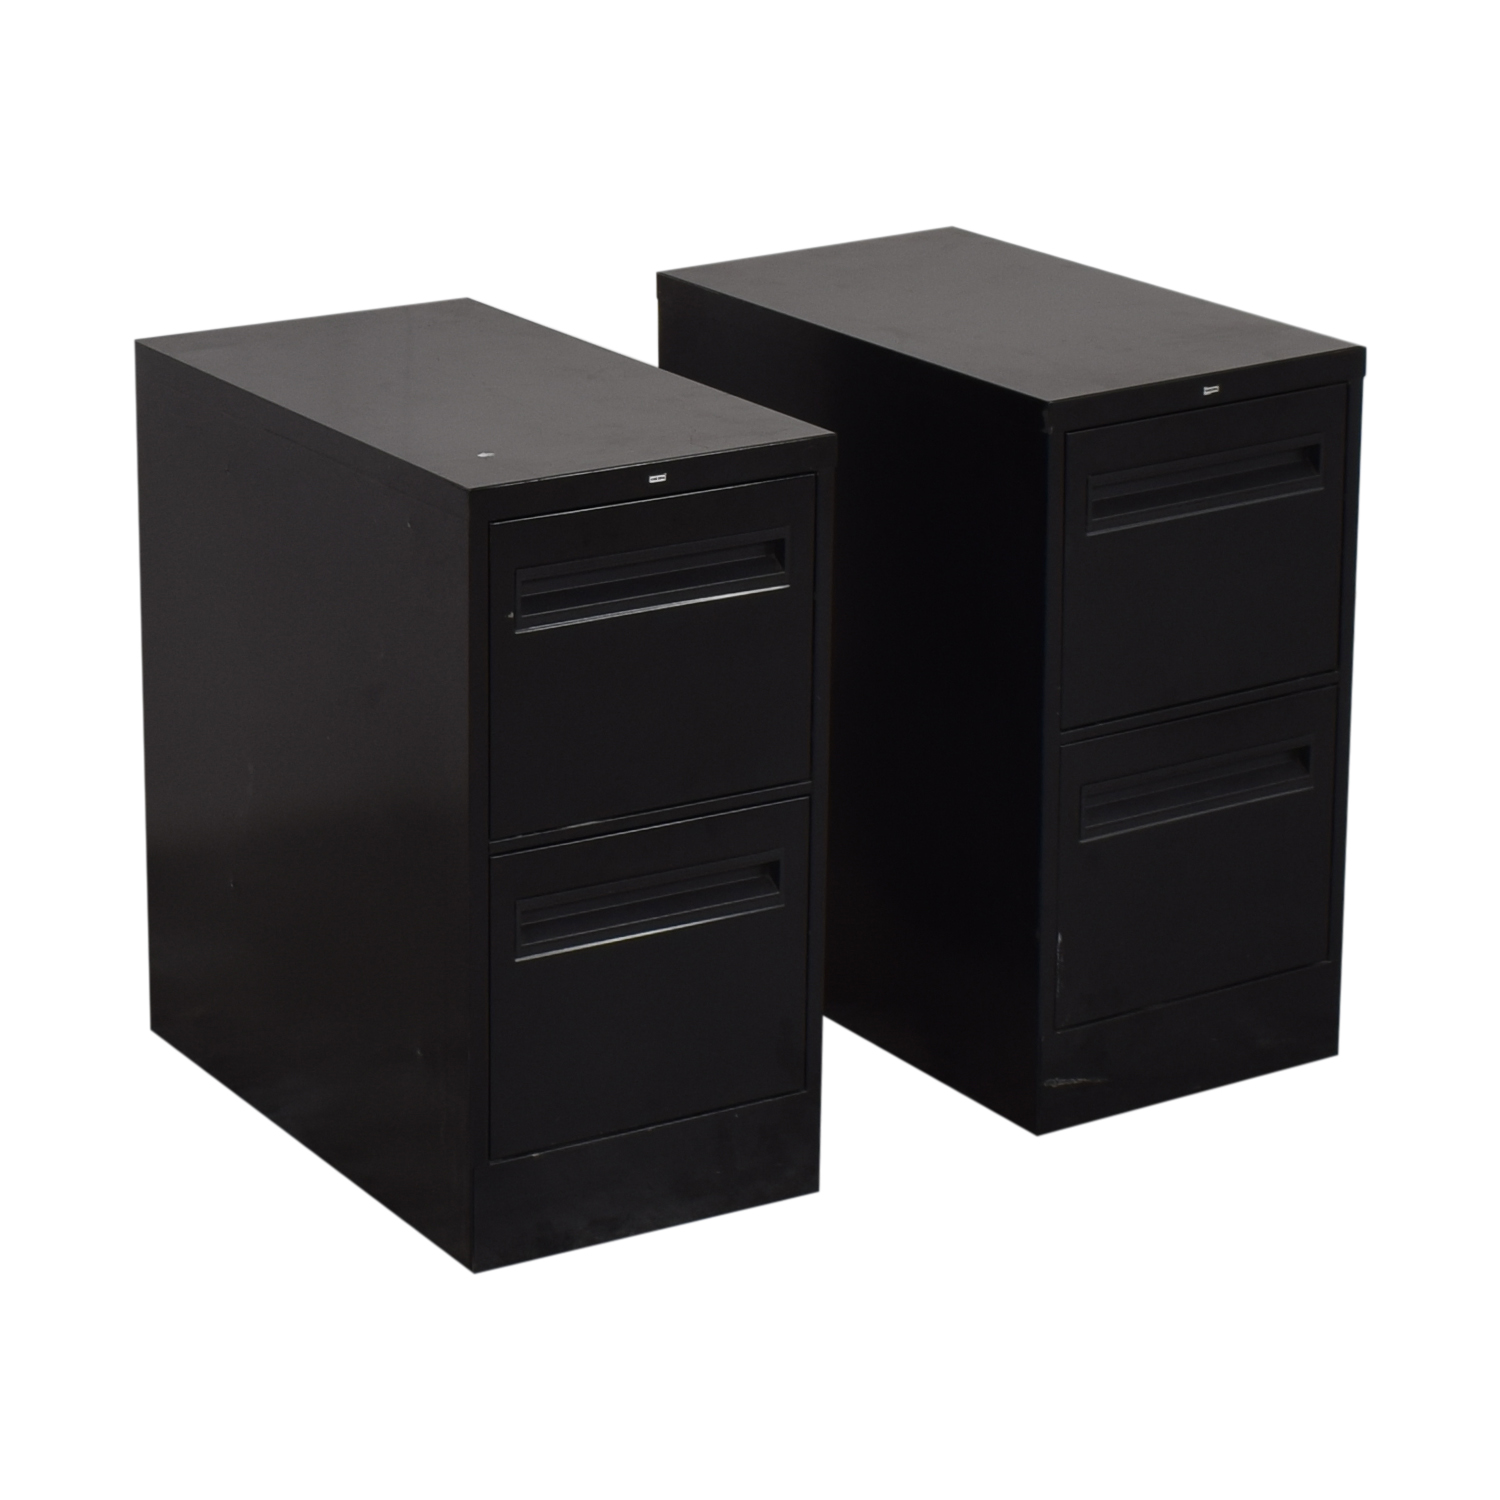 Hon Hon Letter File Cabinets coupon